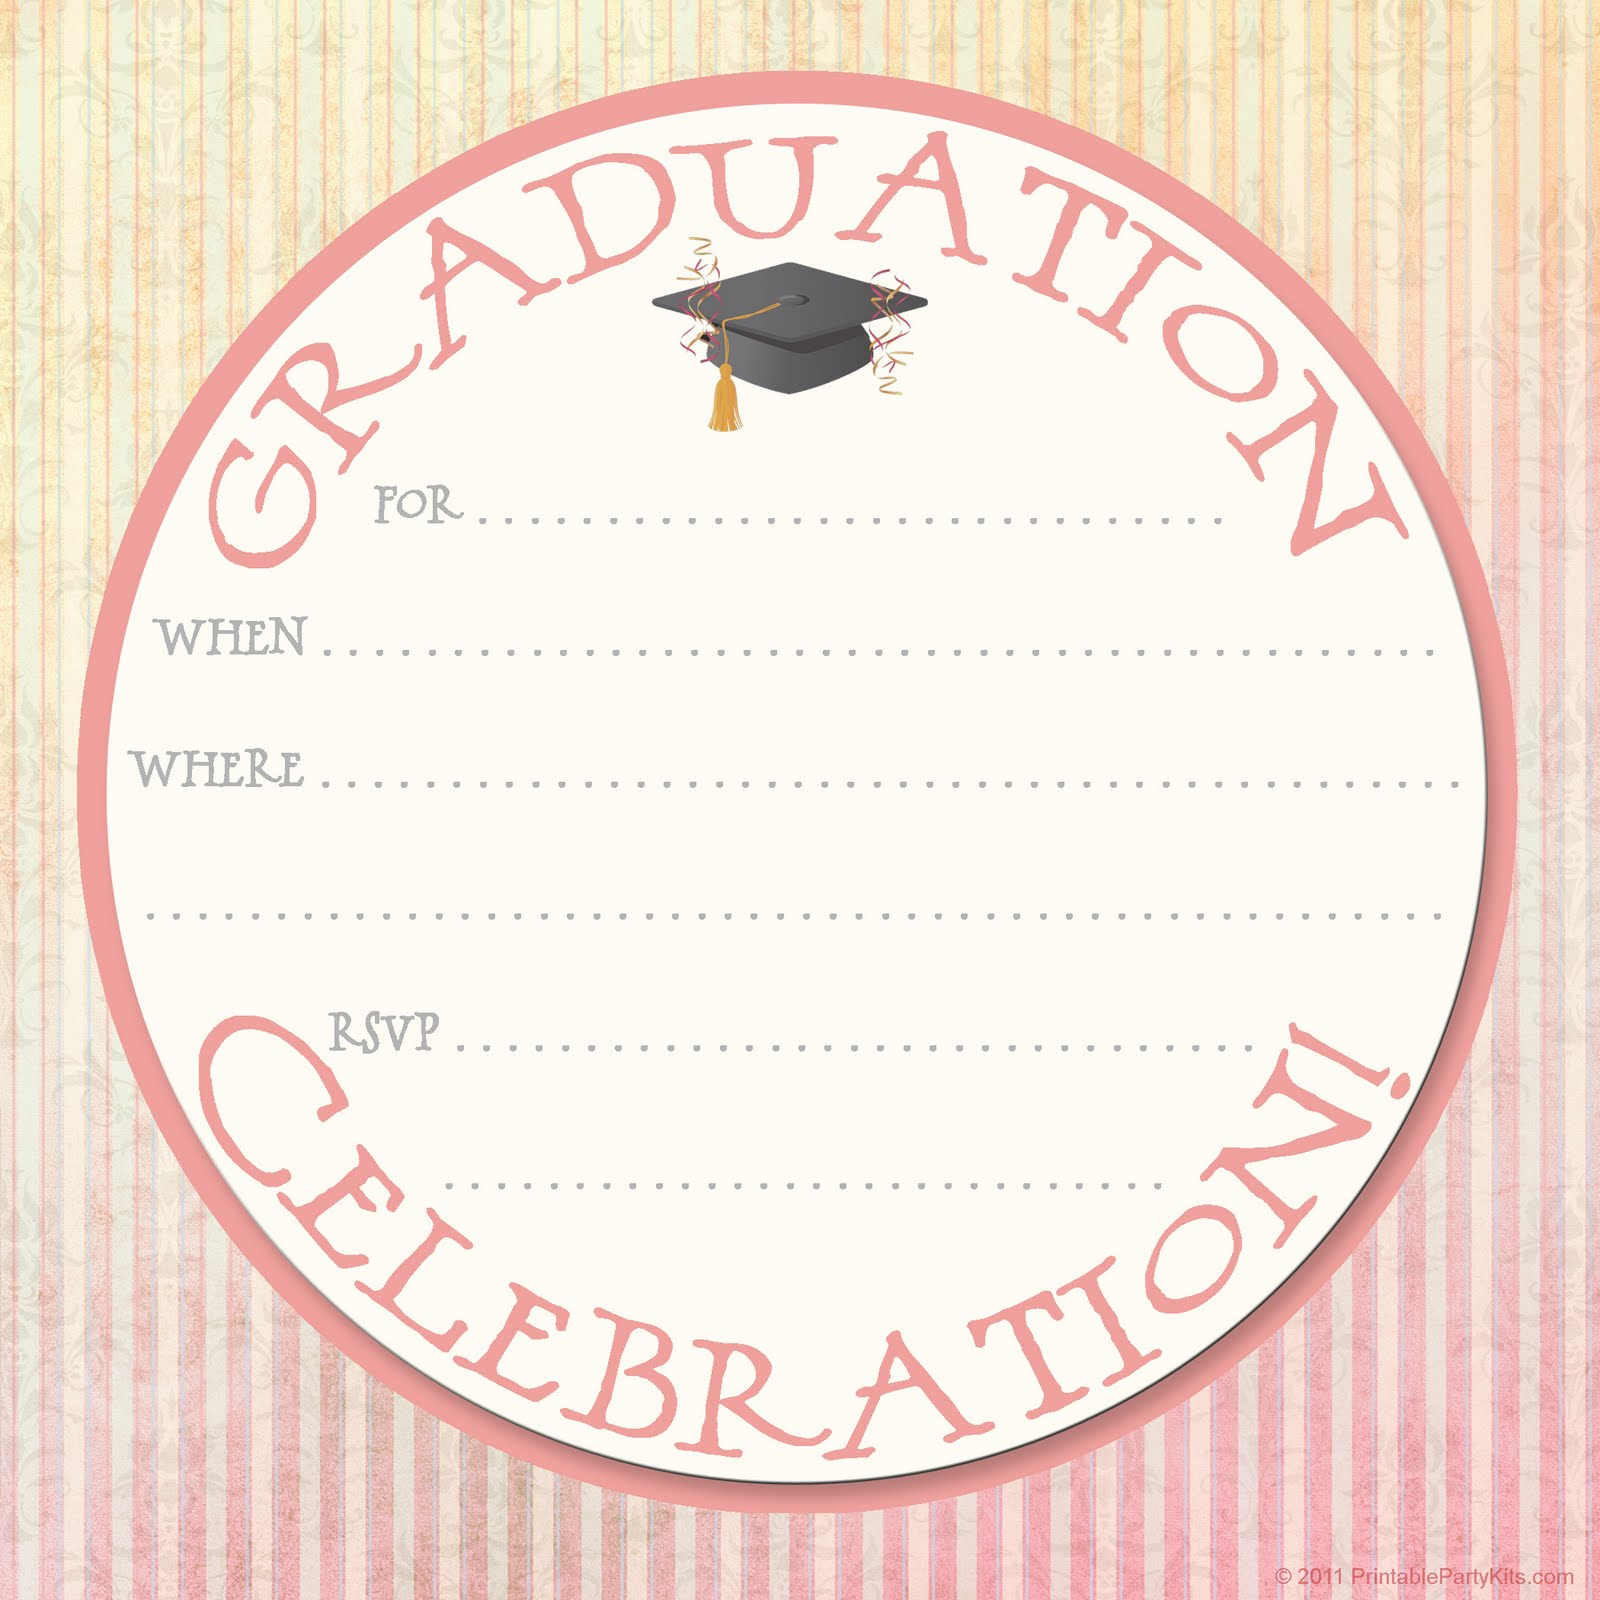 Free Printable Party Invitations: Graduation Party Announcement Design